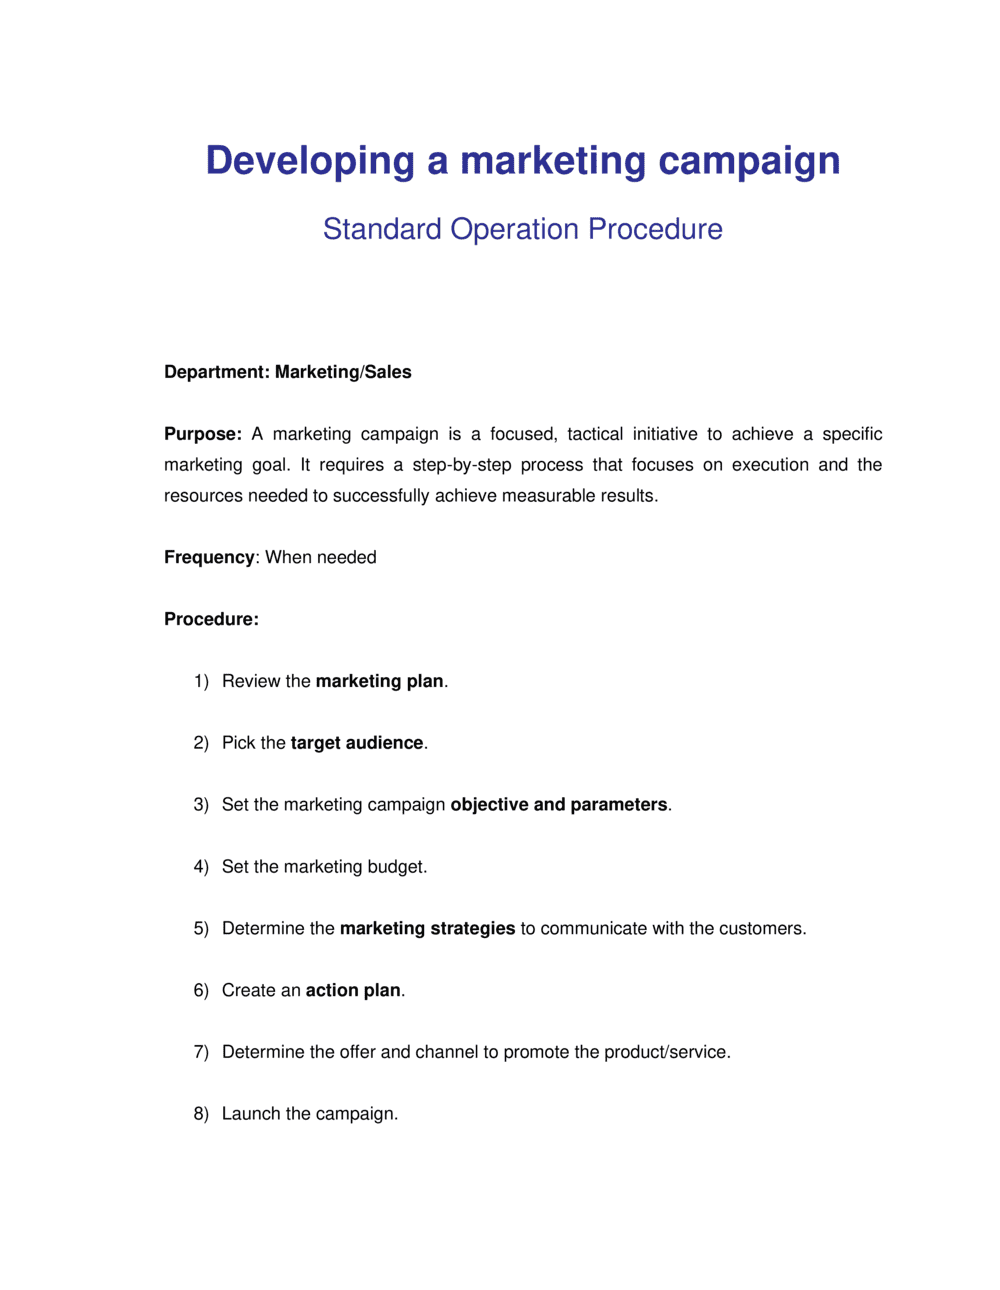 Business-in-a-Box's How to Develop a Marketing Campaign